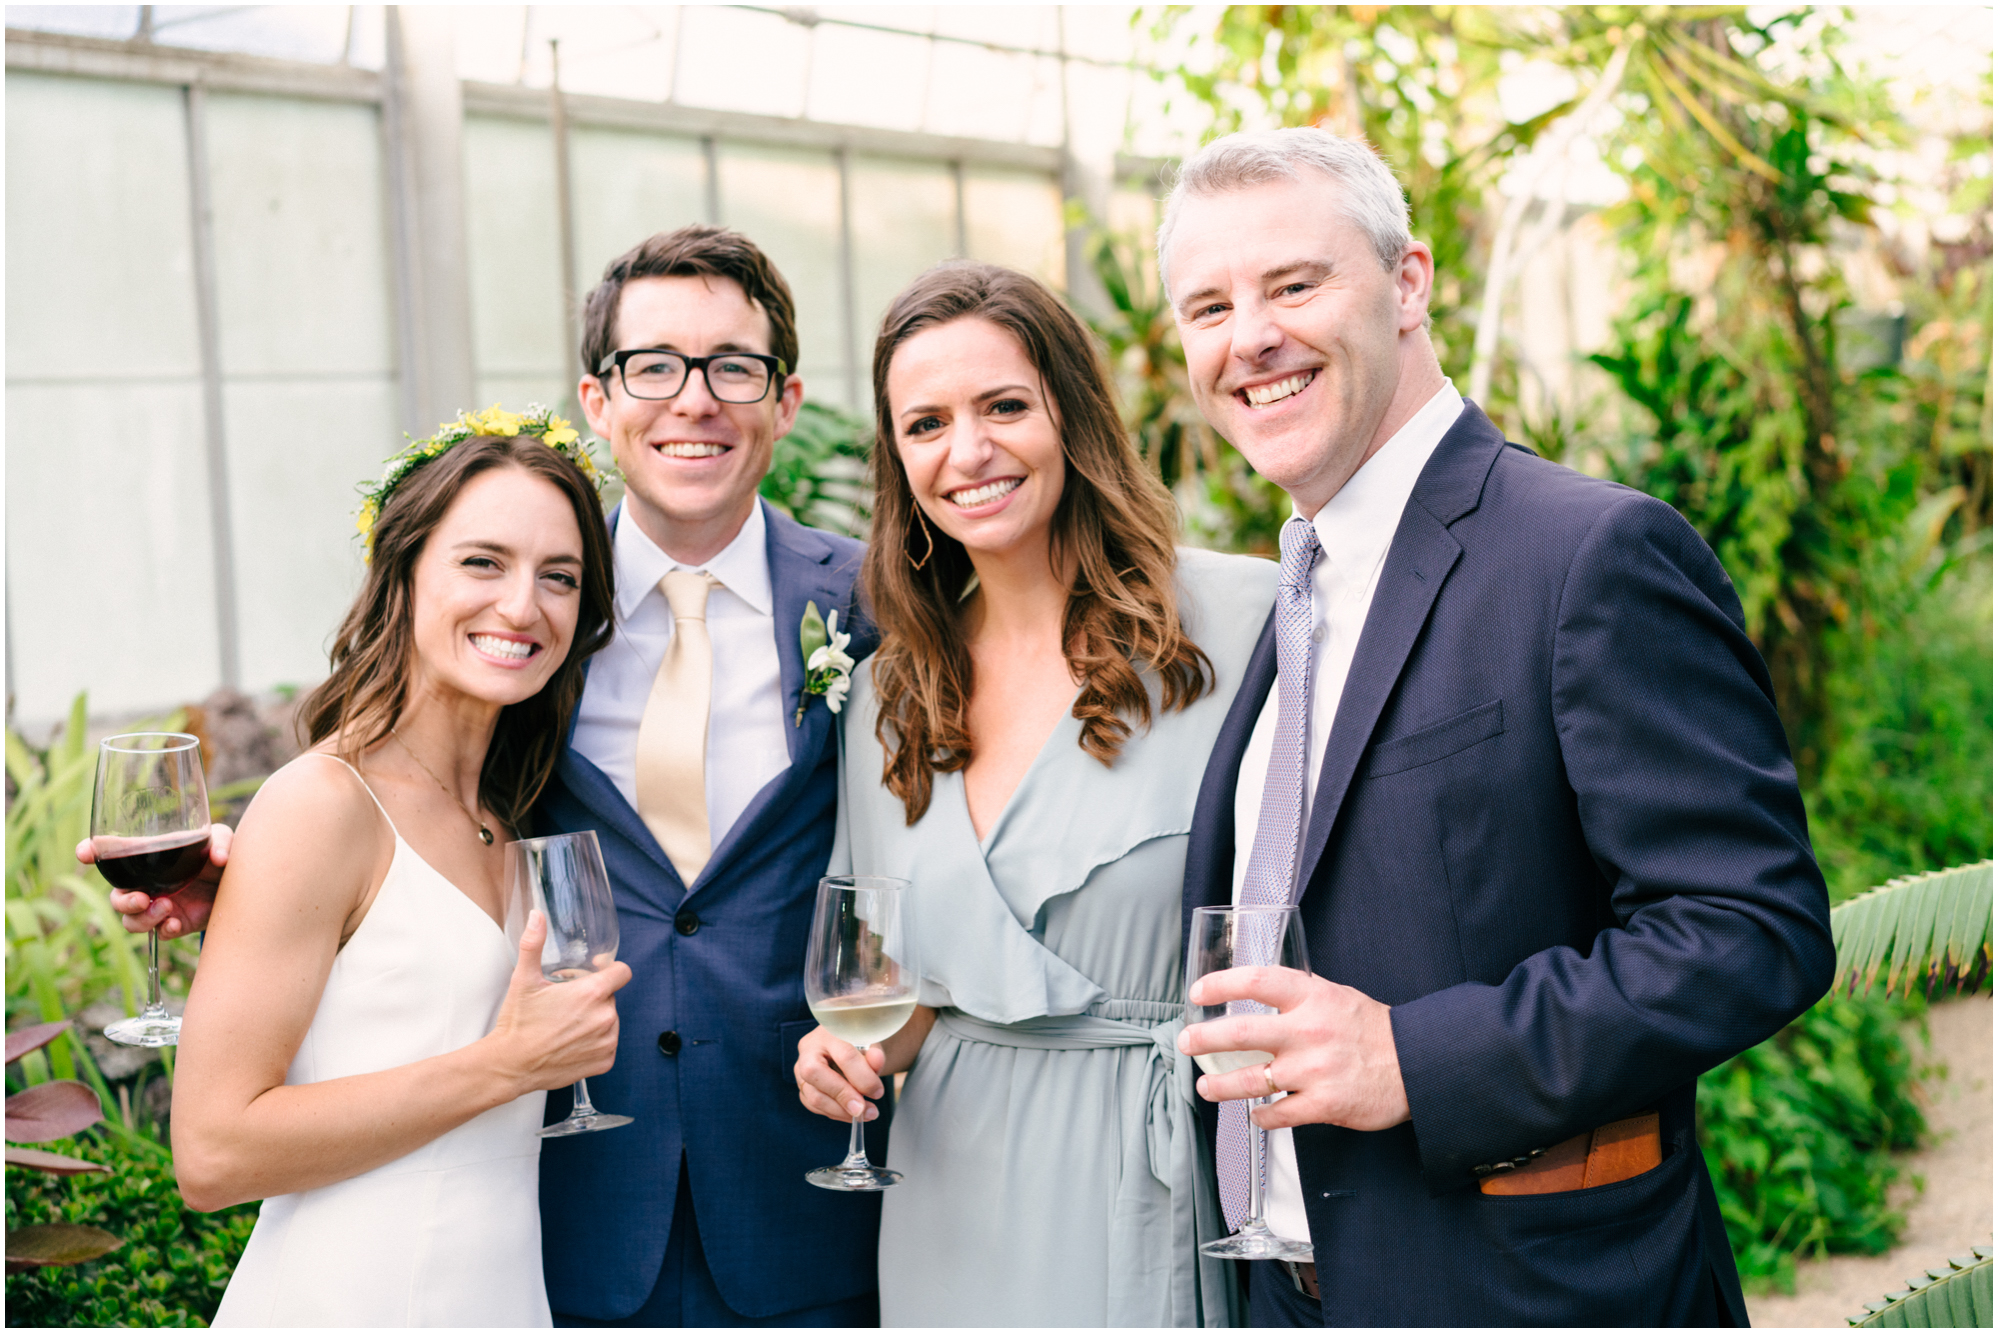 sandiegoweddingphotography.jpg